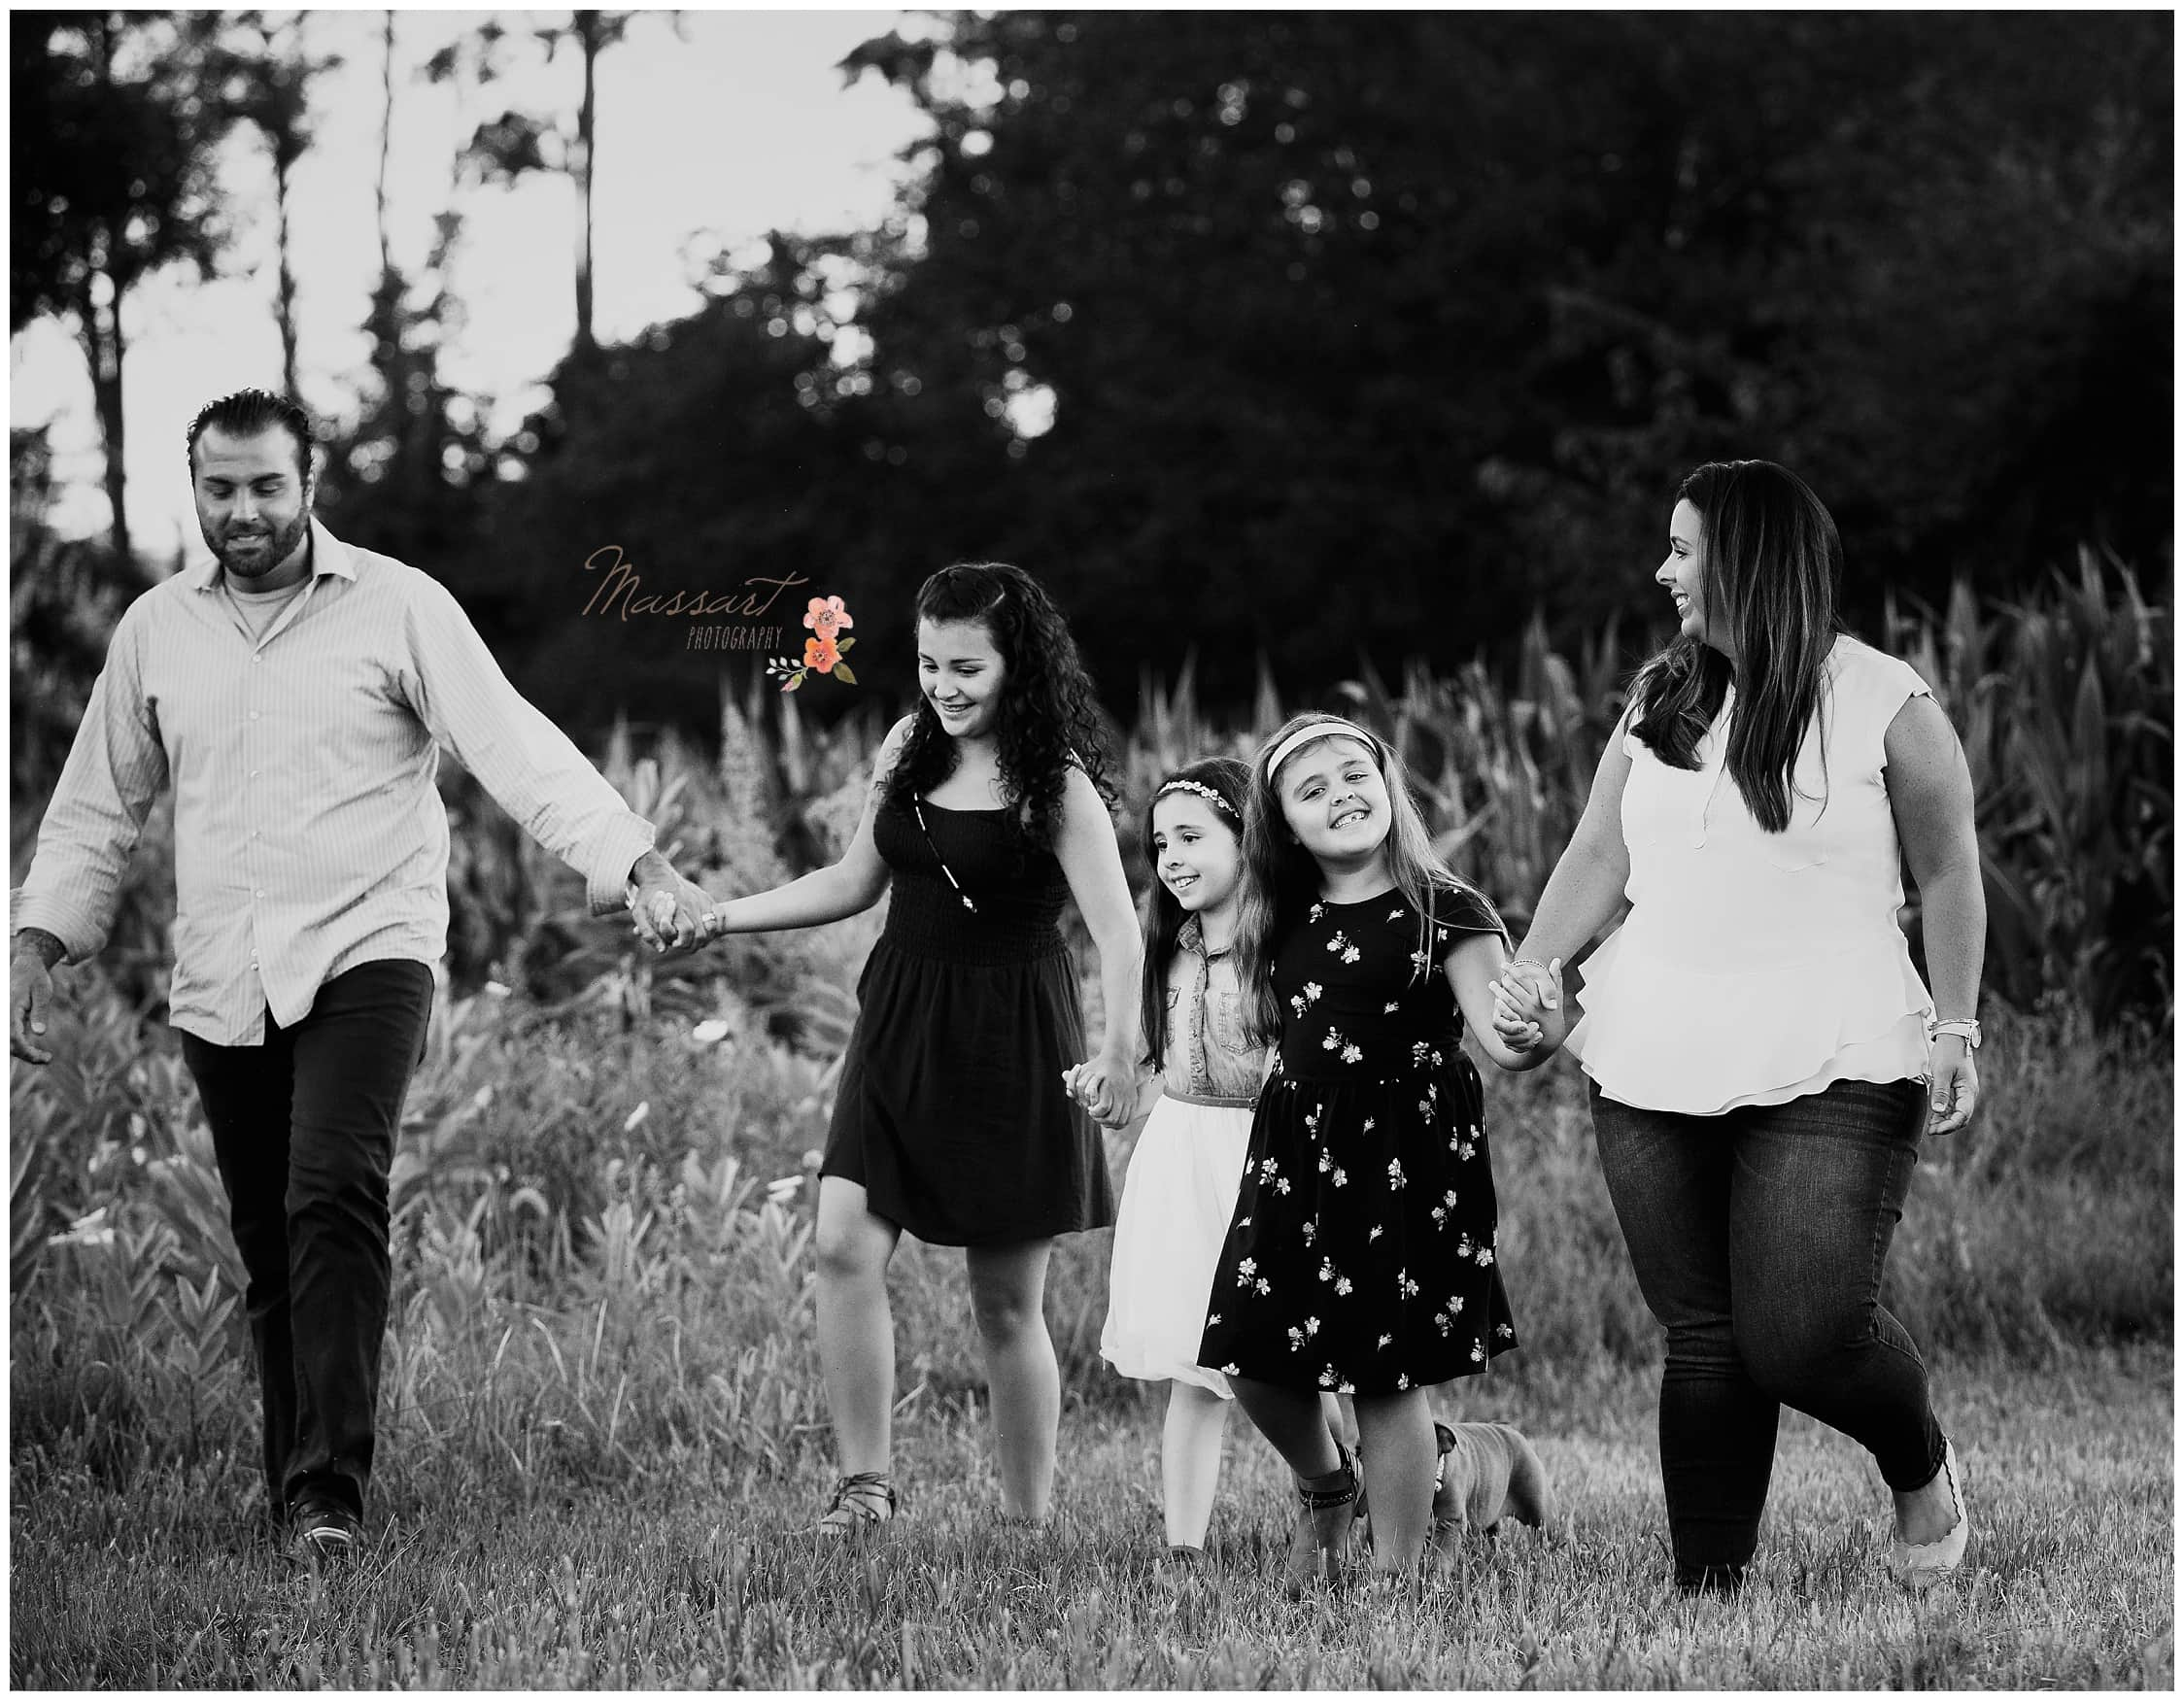 Black and white portrait of the family walking in the grass during their outdoor family portrait session captured by Massart Photography of Warwick, Rhode Island